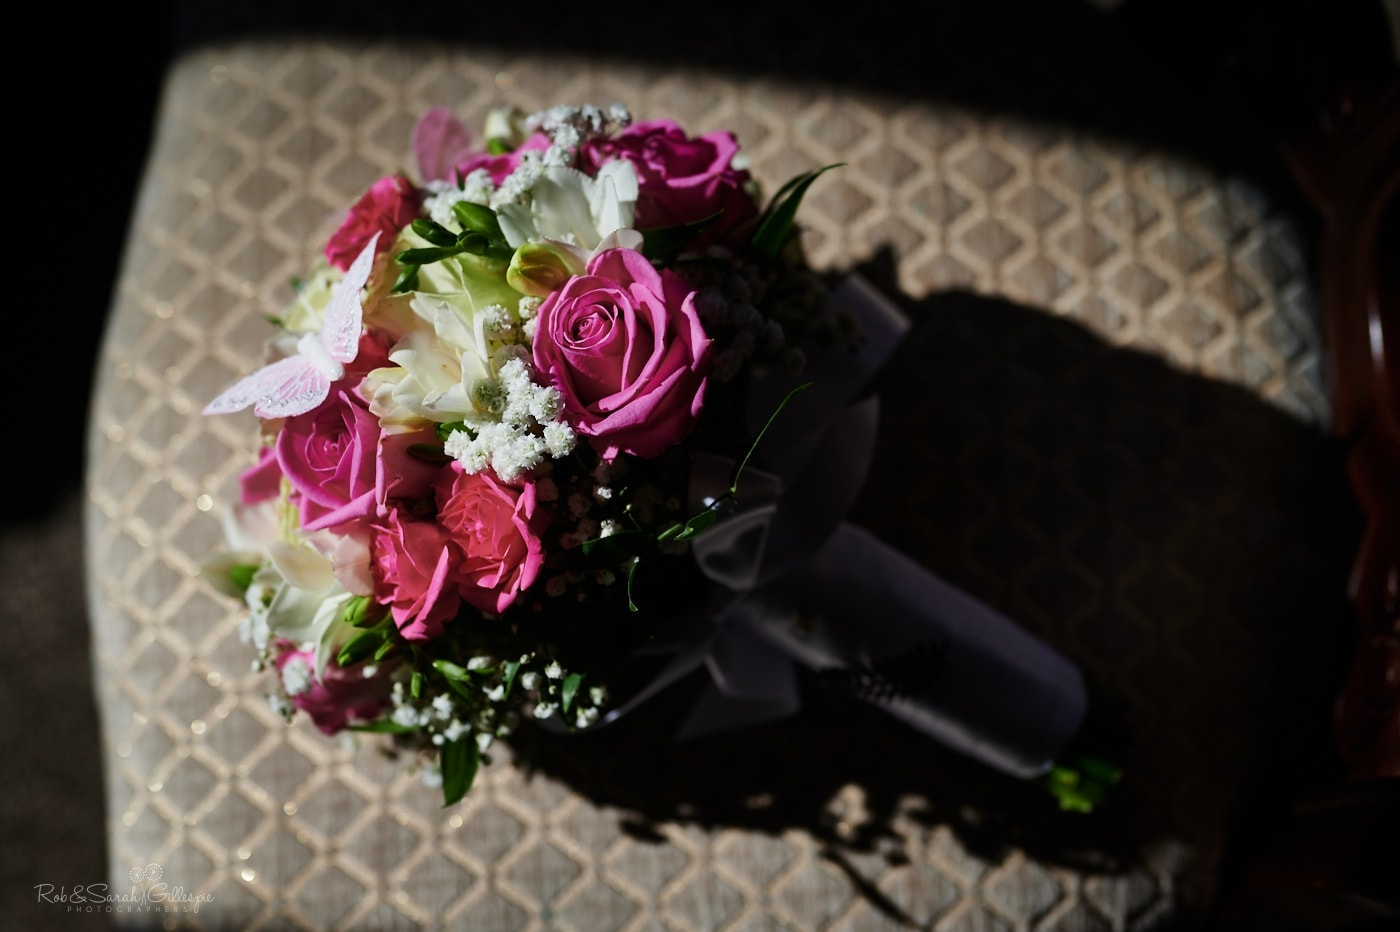 Pink and white bouquet of flowers on shar in strong daylight